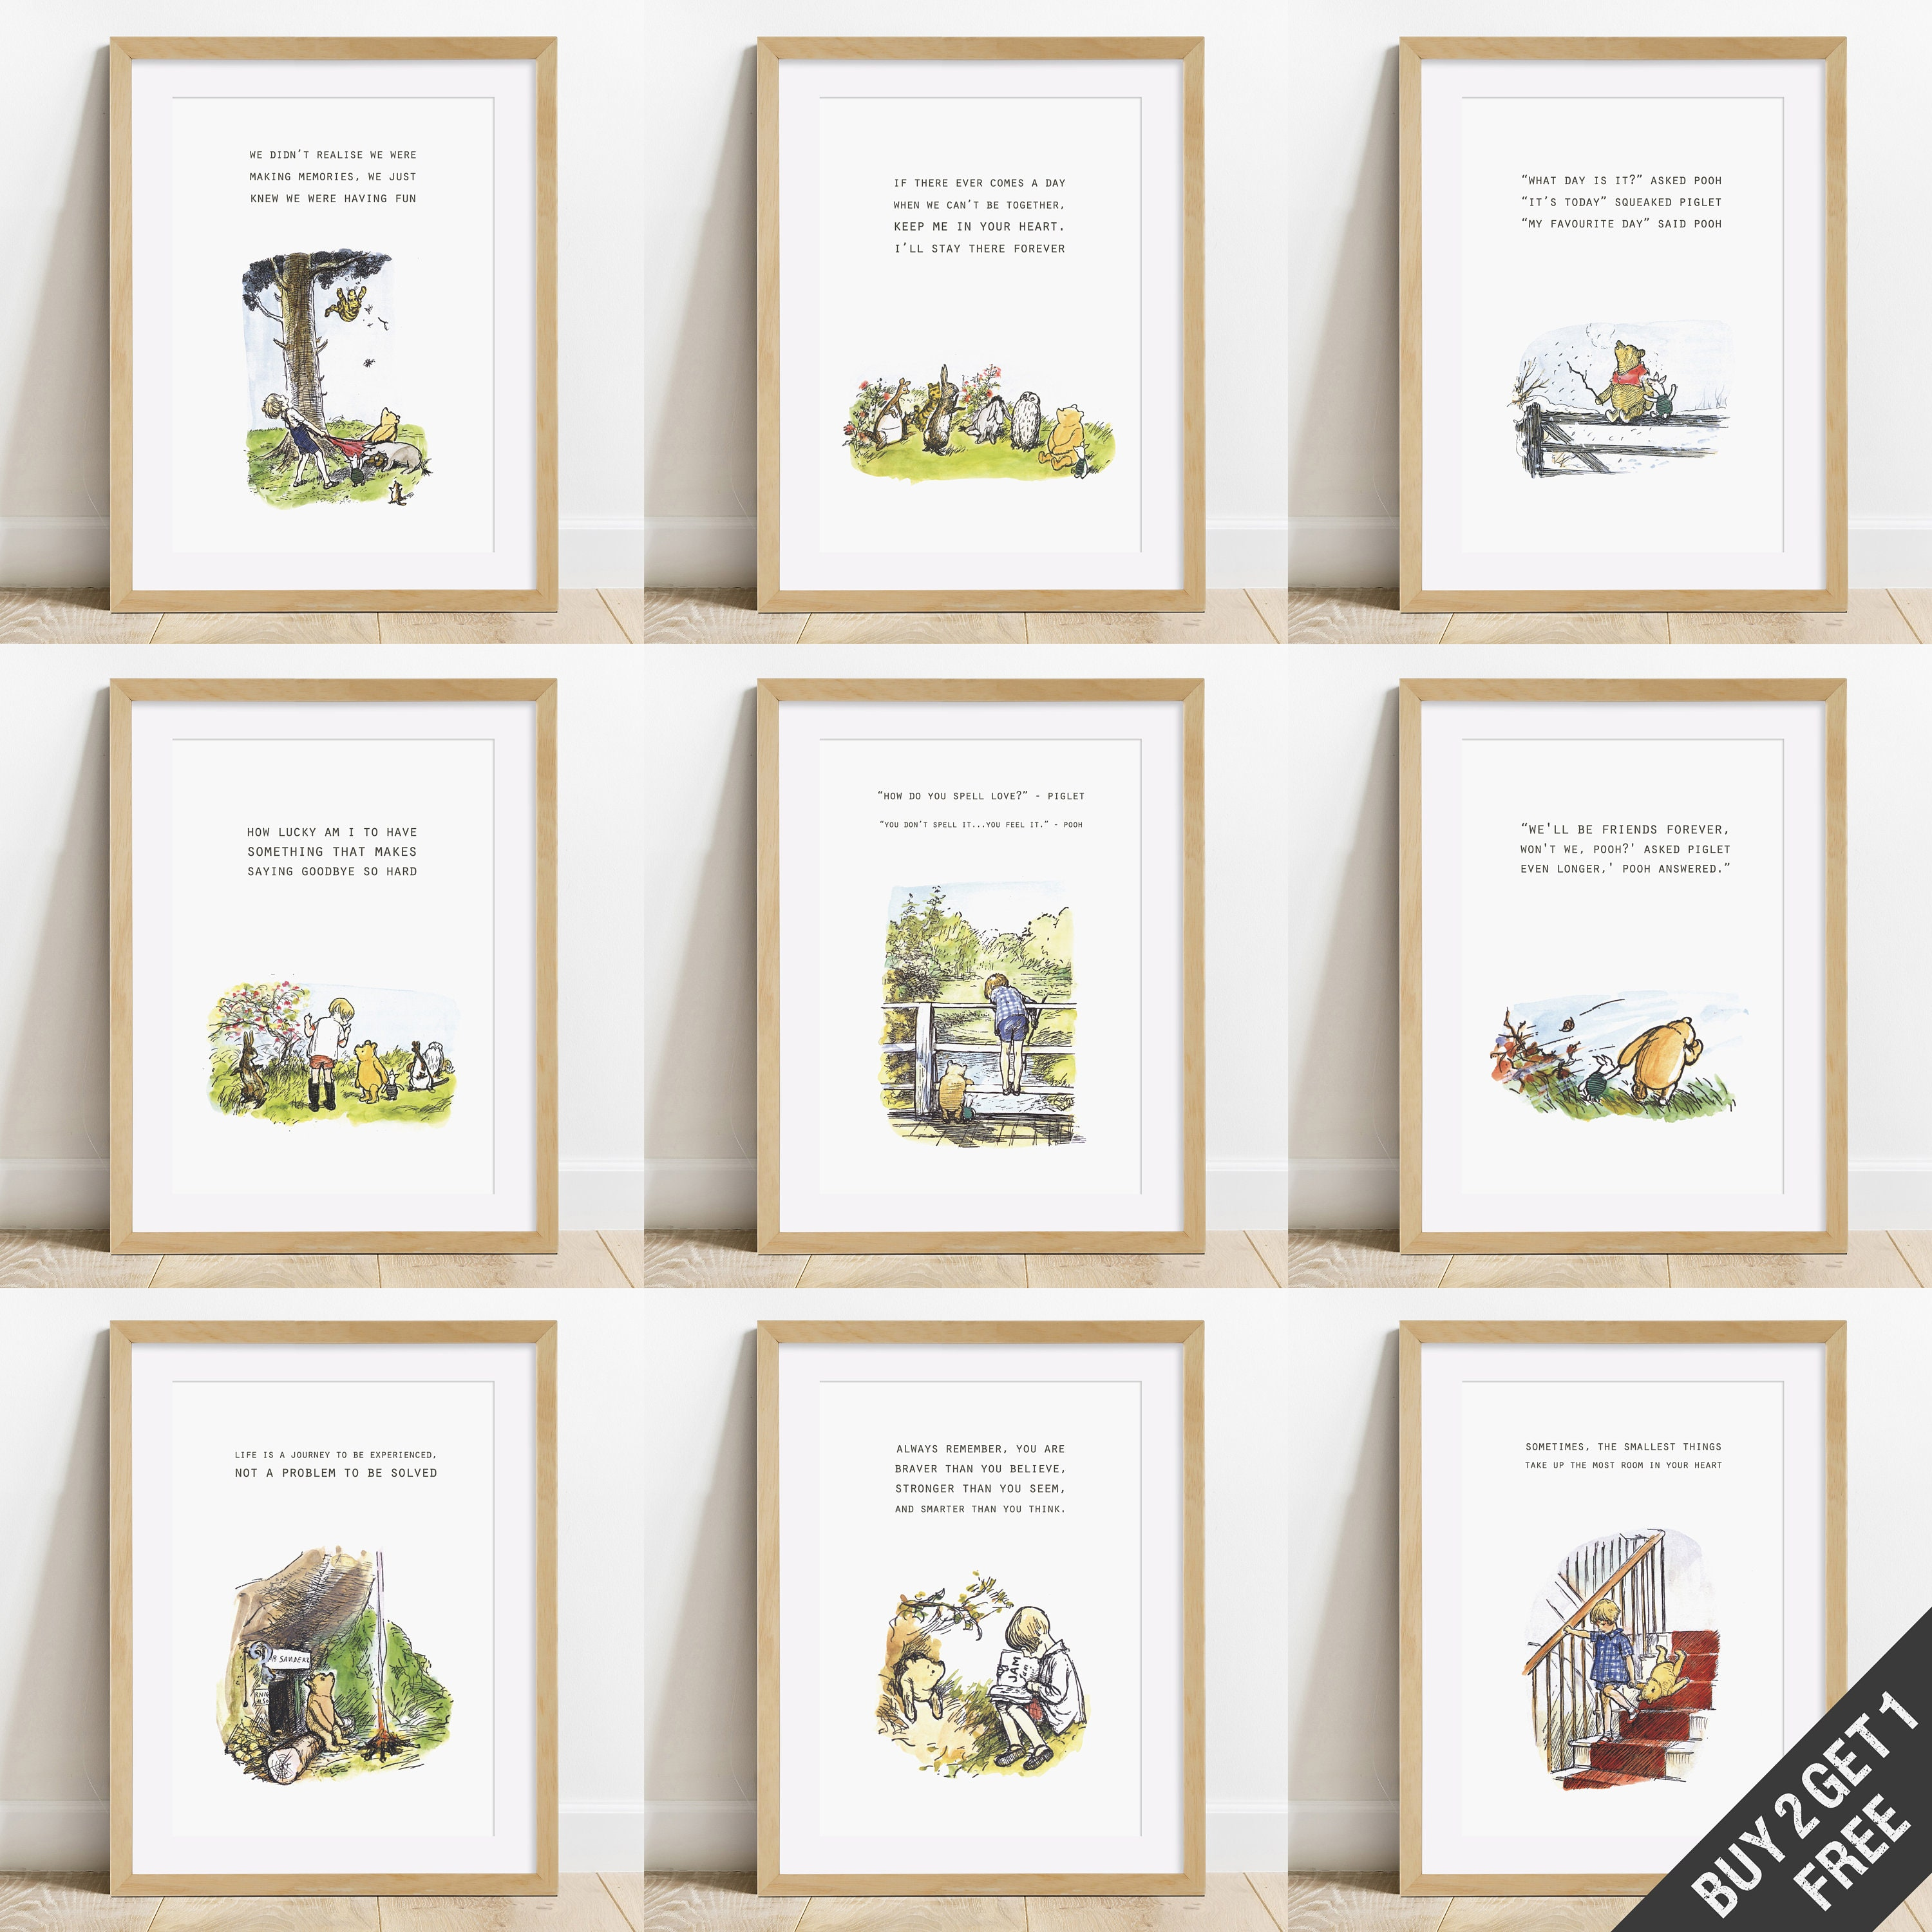 winnie the pooh quote prints 3for2 5for3 a4 bedroom  etsy